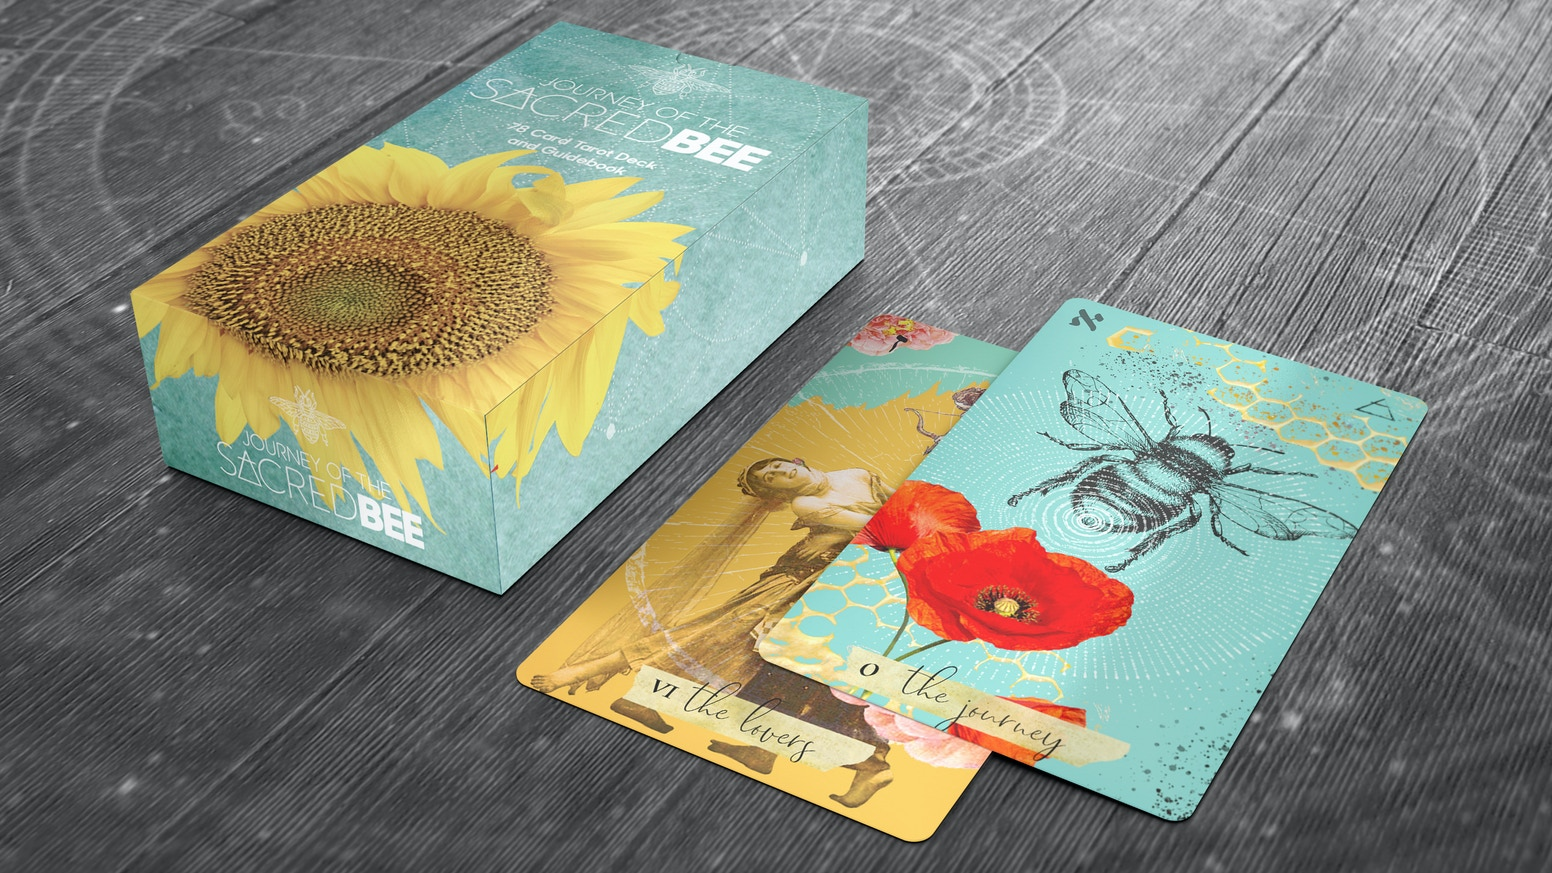 A Beautiful 78 Card Tarot deck taking you through a magical journey with the Sacred Bee.